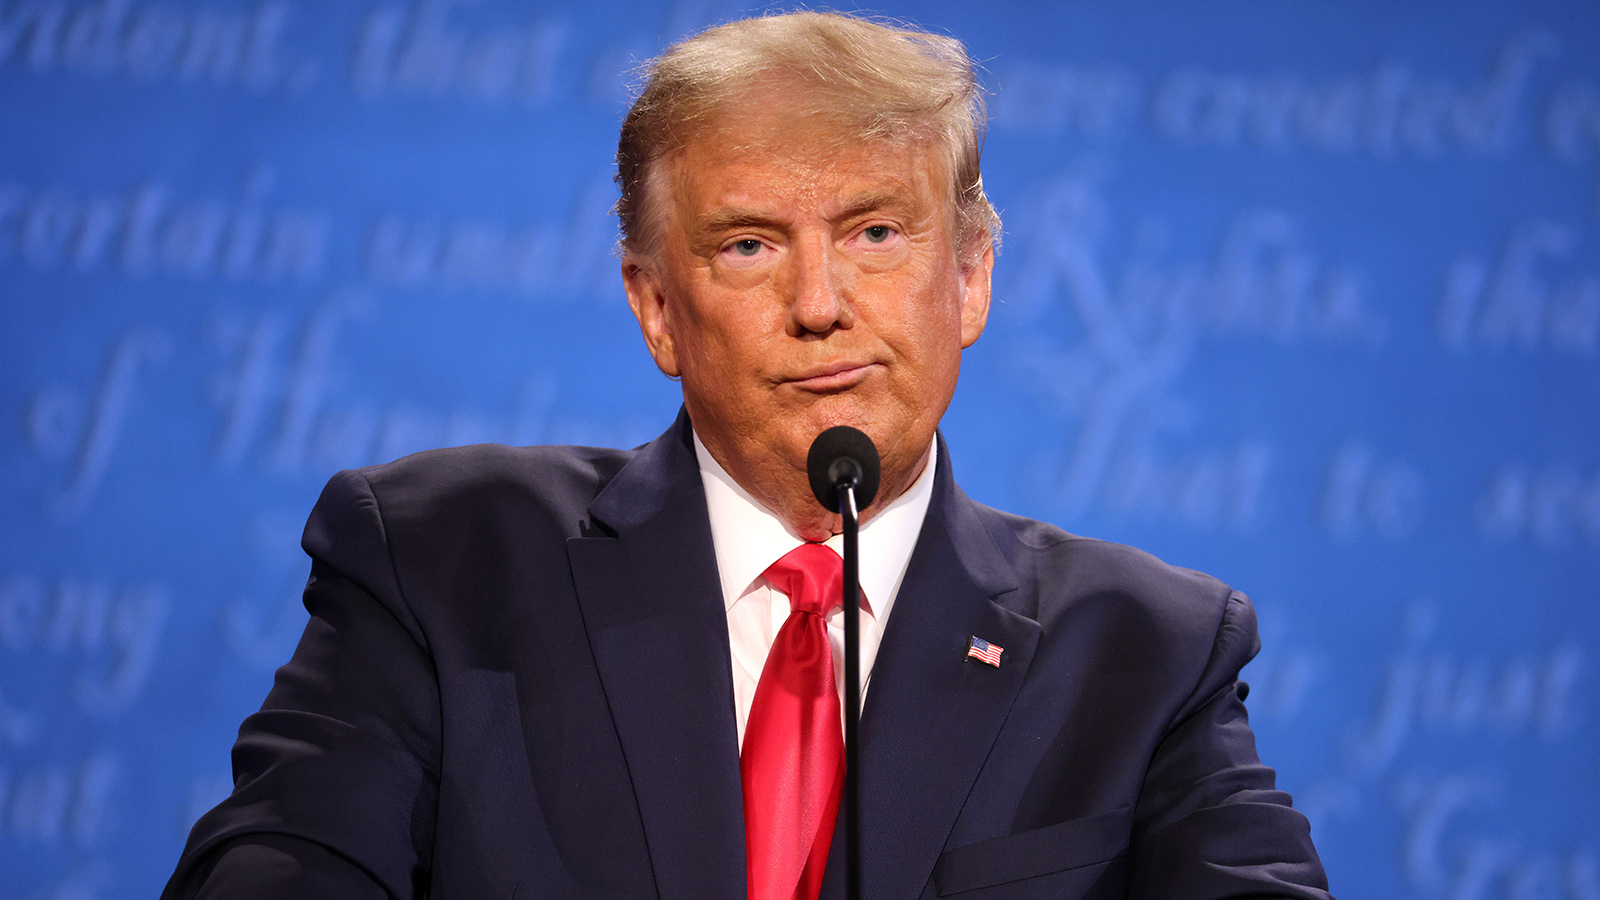 Trump goads Biden into saying he'll 'phase out' fossil fuels at final debate